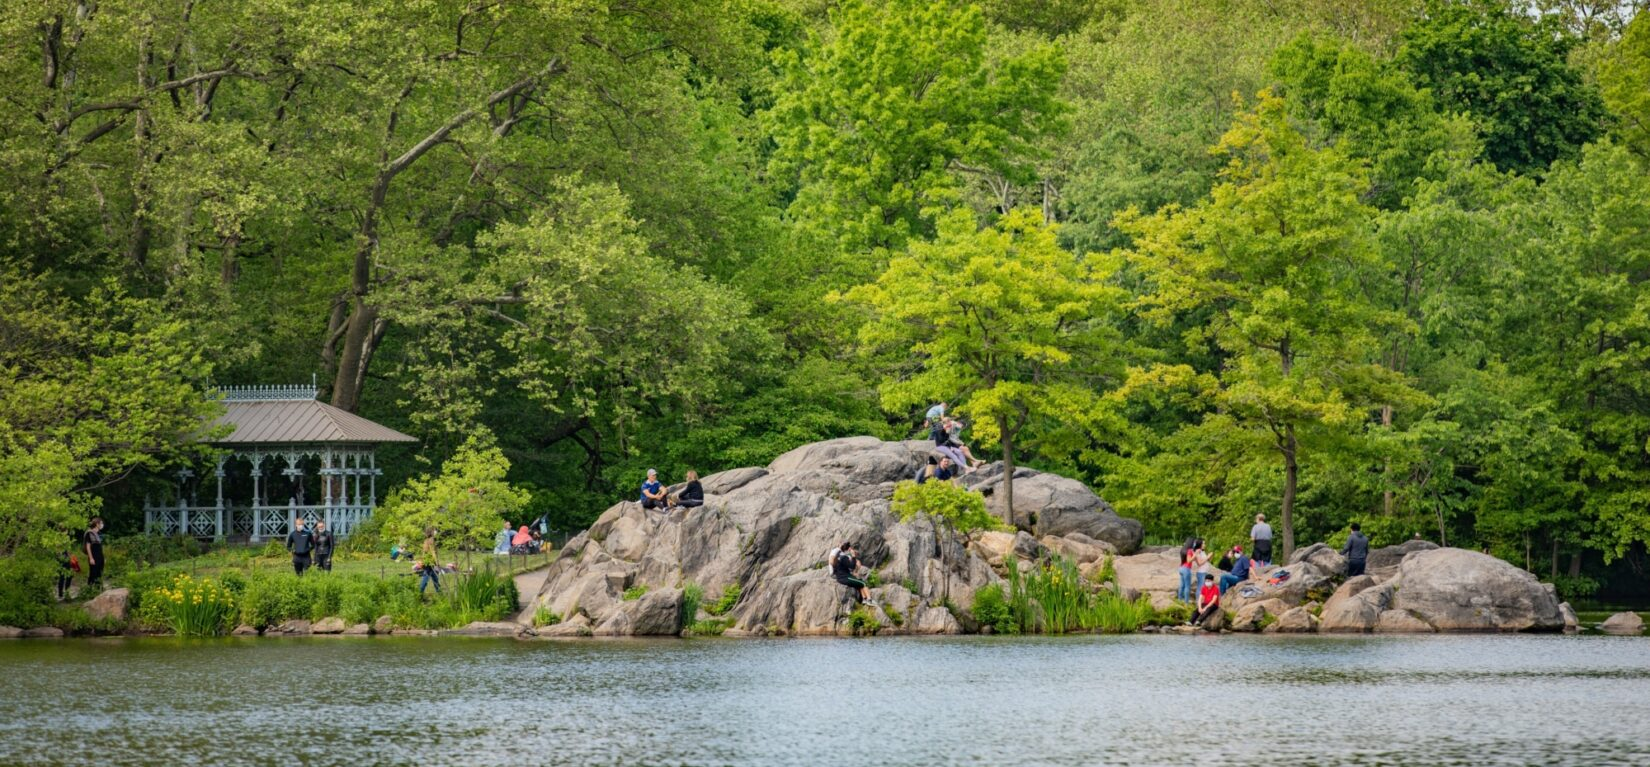 Visitors enjoy the view of the Lake from the rocks of Hernshead